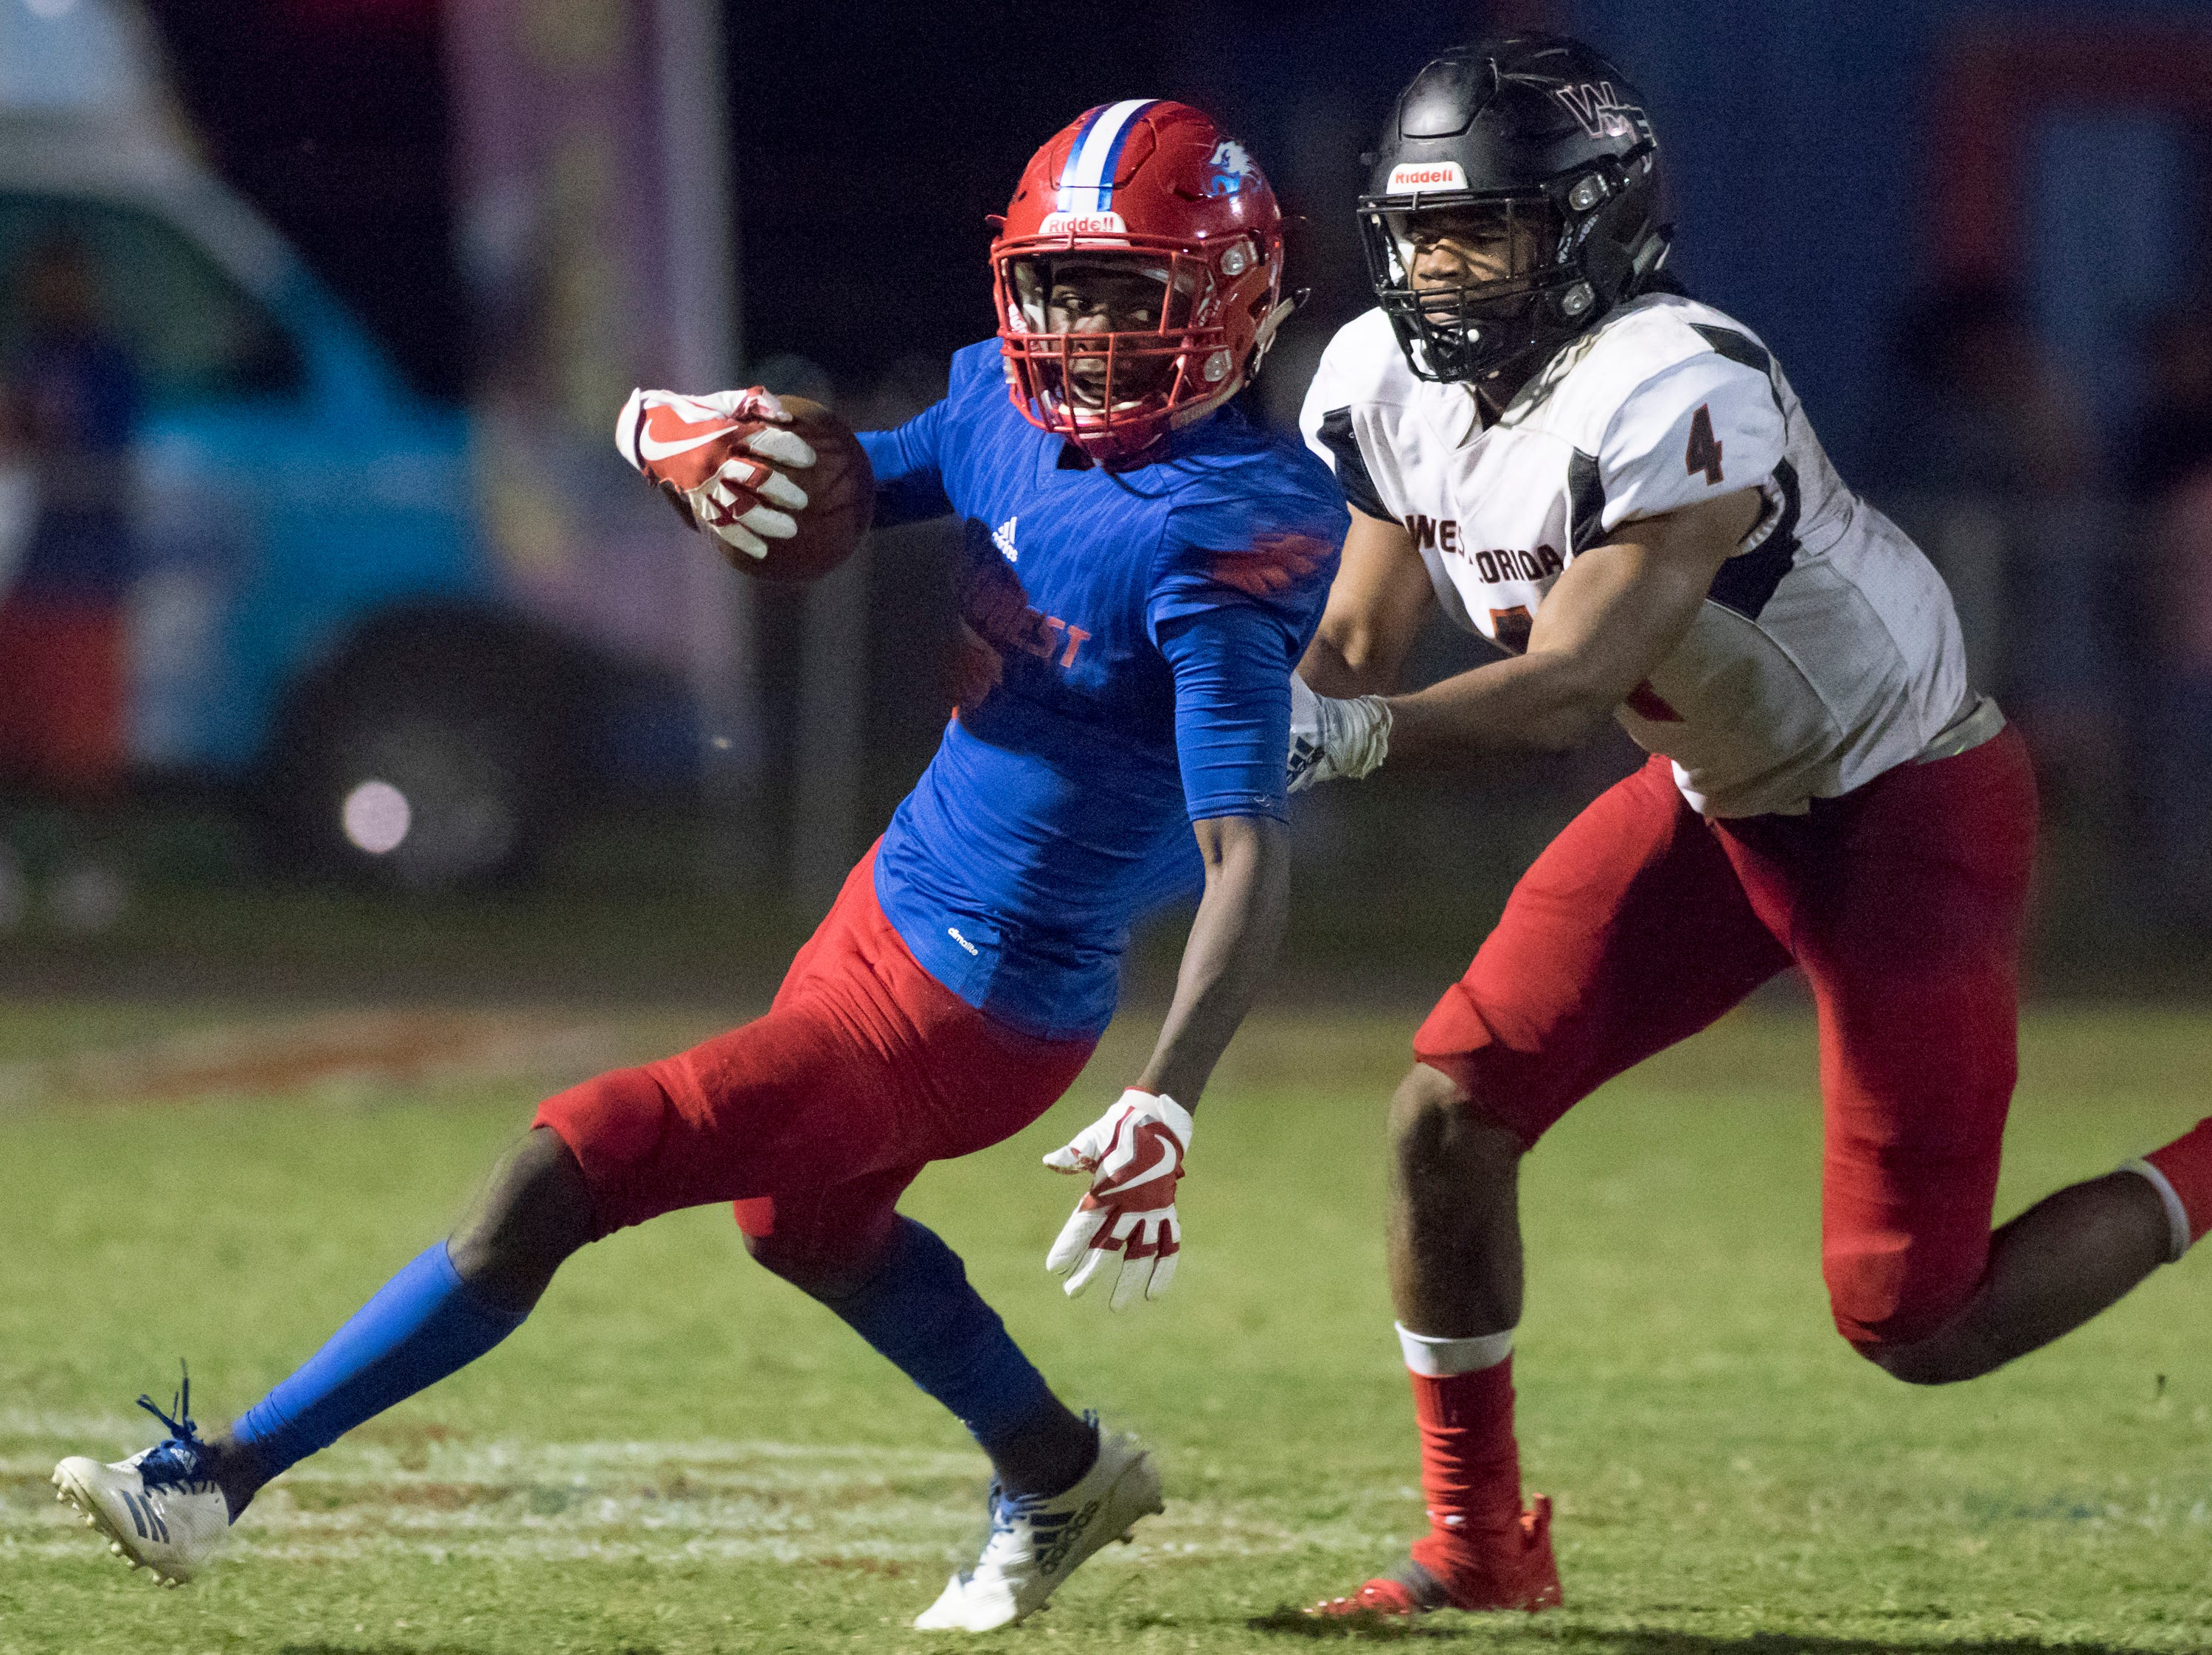 Decarrion McWilliams (5) returns the second half kickoff during the West Florida vs Pine Forest football game at Pine Forest High School in Pensacola on Friday, October 5, 2018.